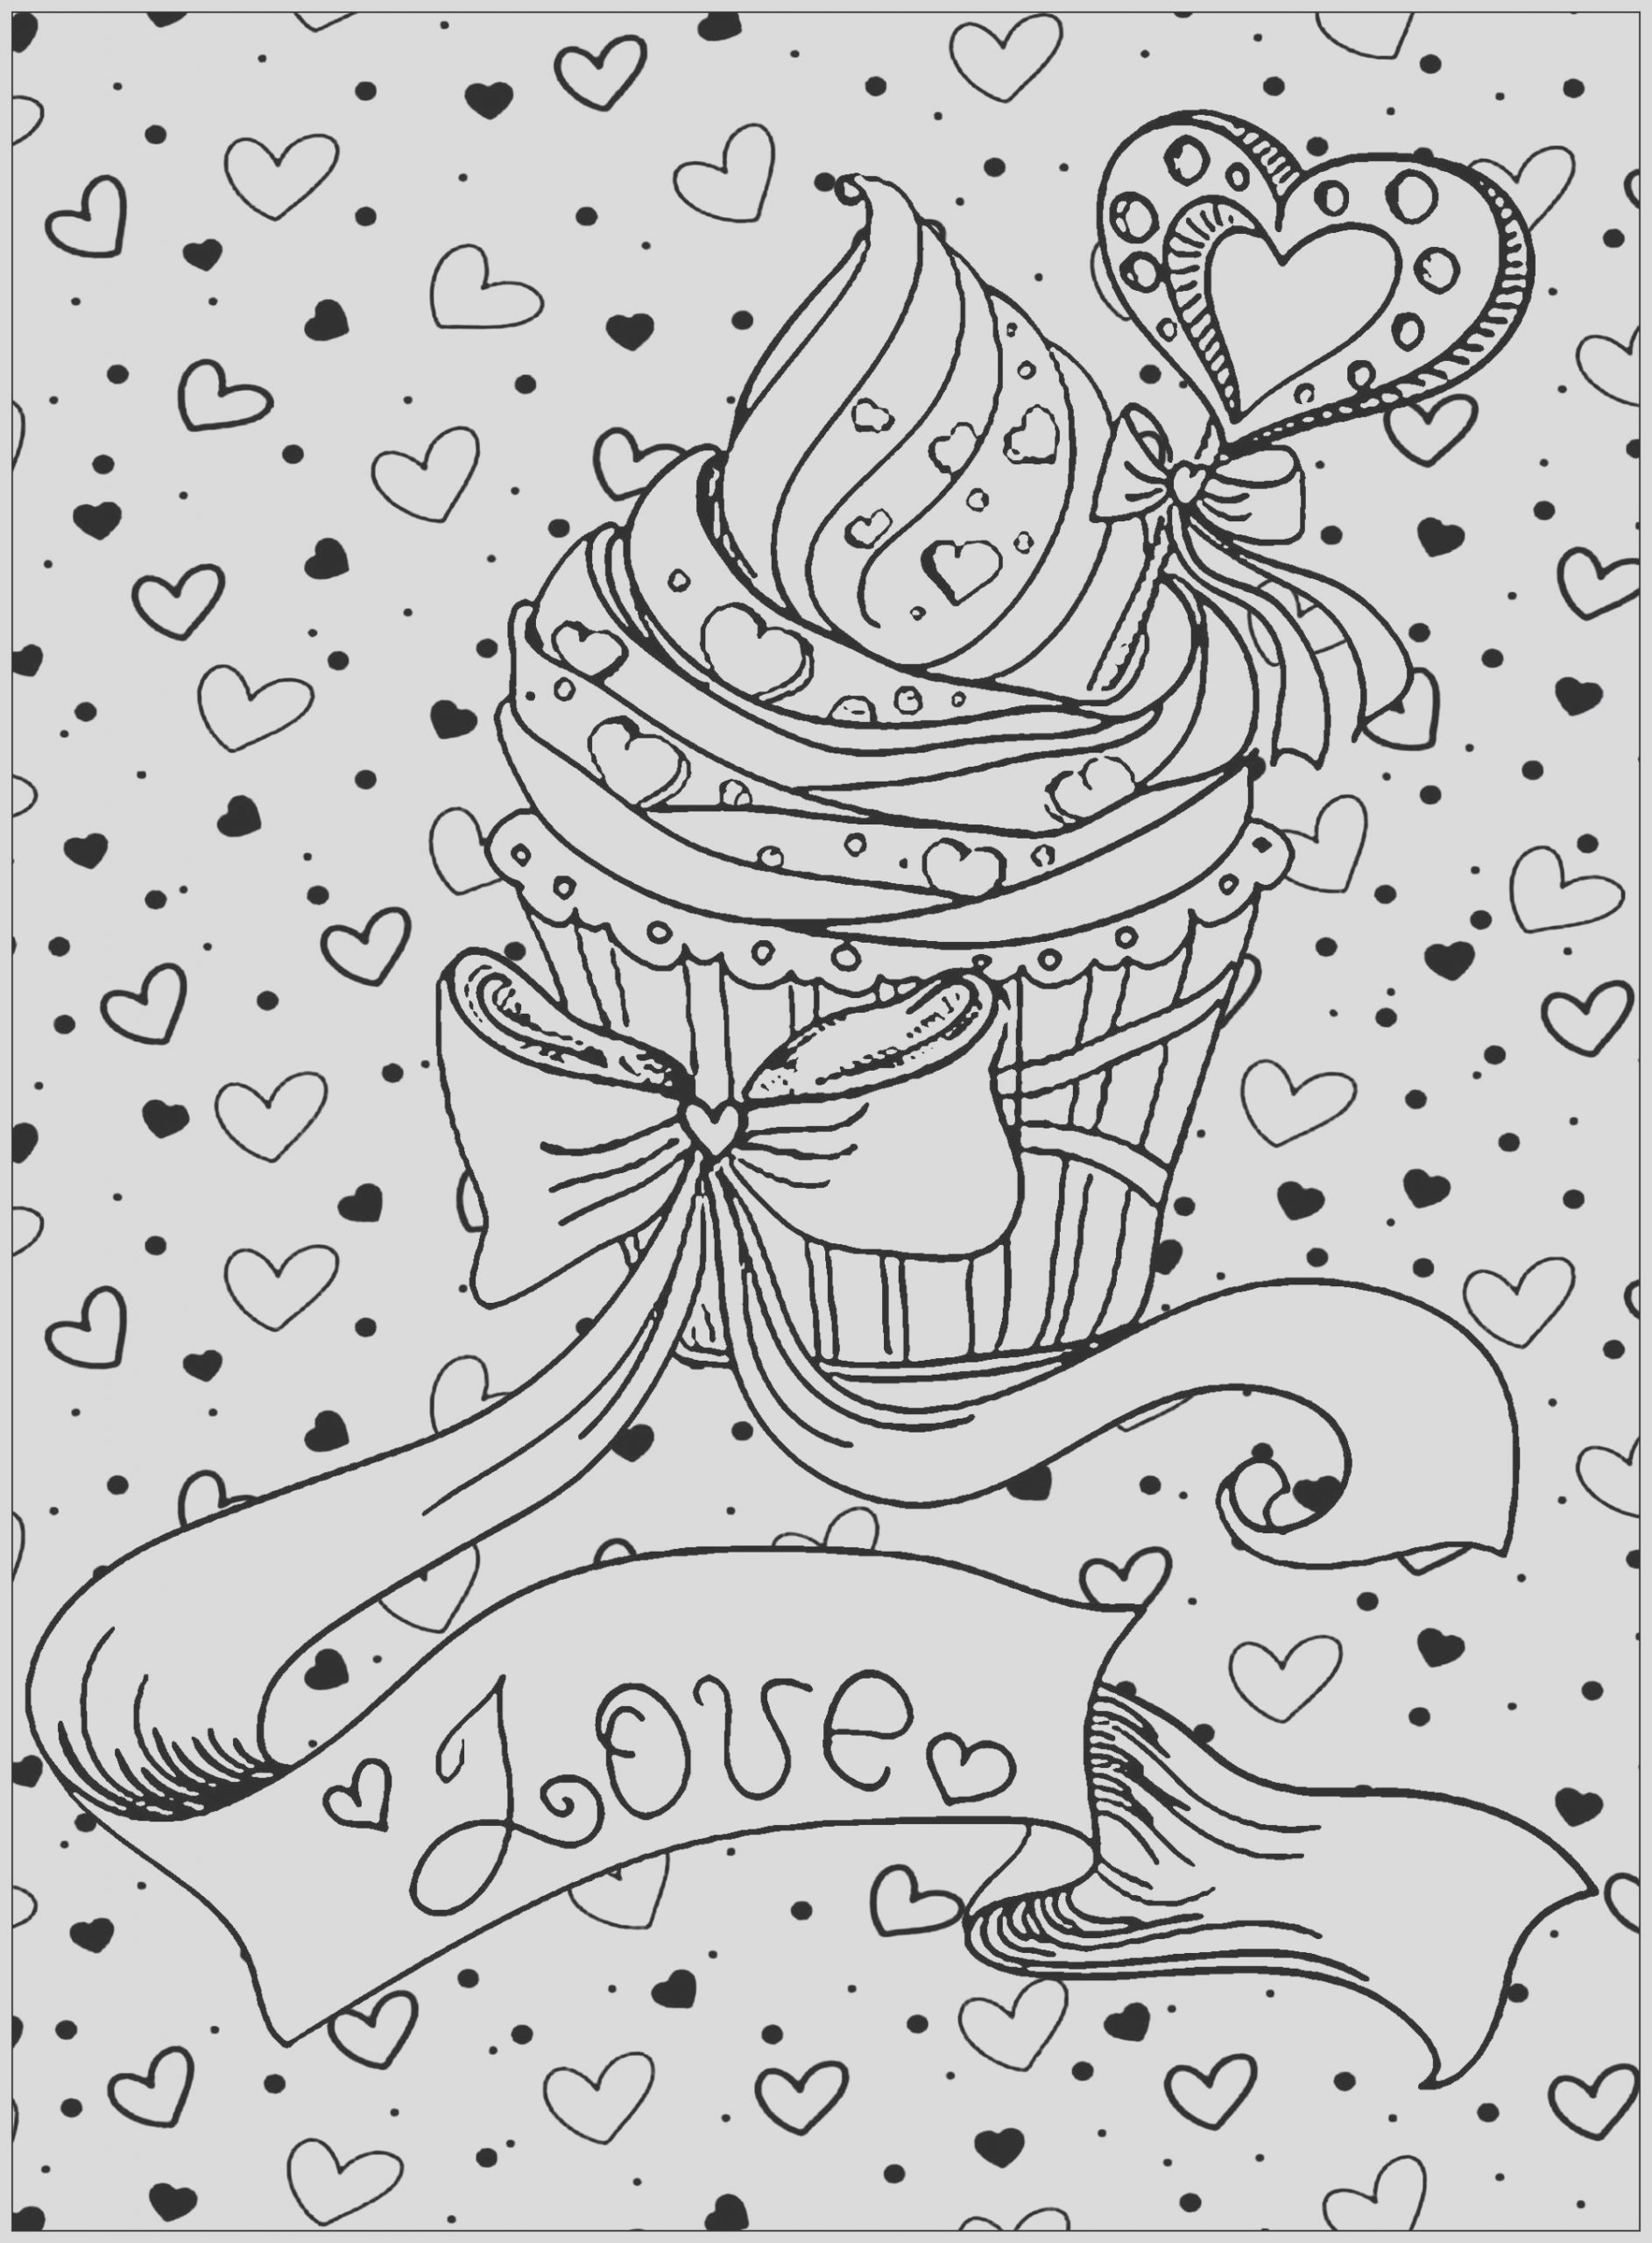 image=cup cakes coloring page cupcake love 1